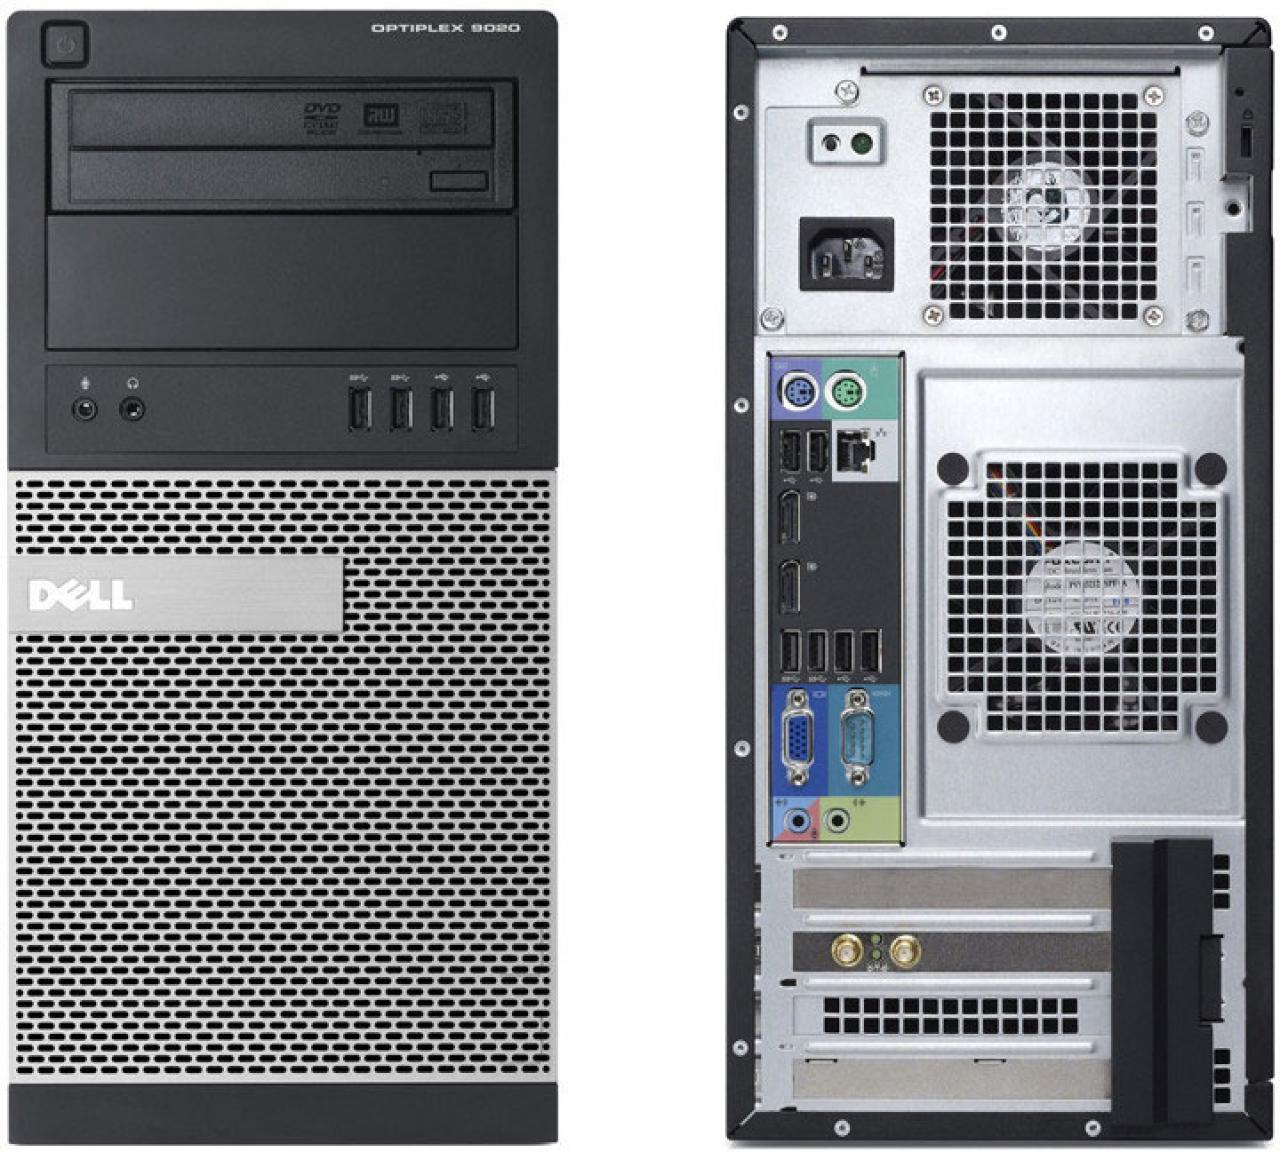 Watch besides 3400sff further Refurbished  puter Tower in addition Dell Optiplex 990 Sff Intel Lga1155 Motherboard D6h9t additionally Dell Desktop  puter Price. on dell optiplex 990